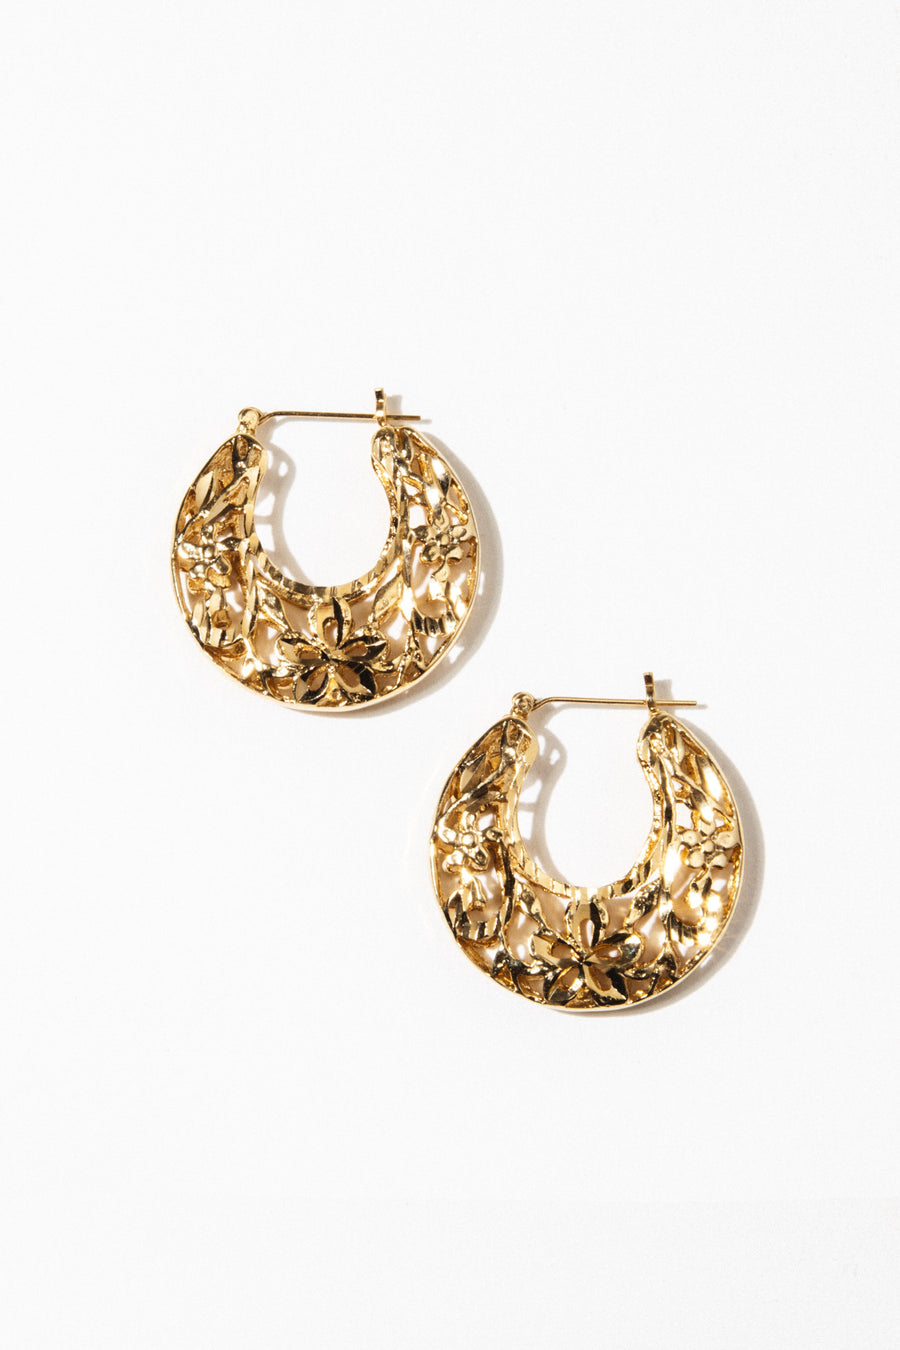 Goddess Jewelry Gold Spanish Fly Earrings